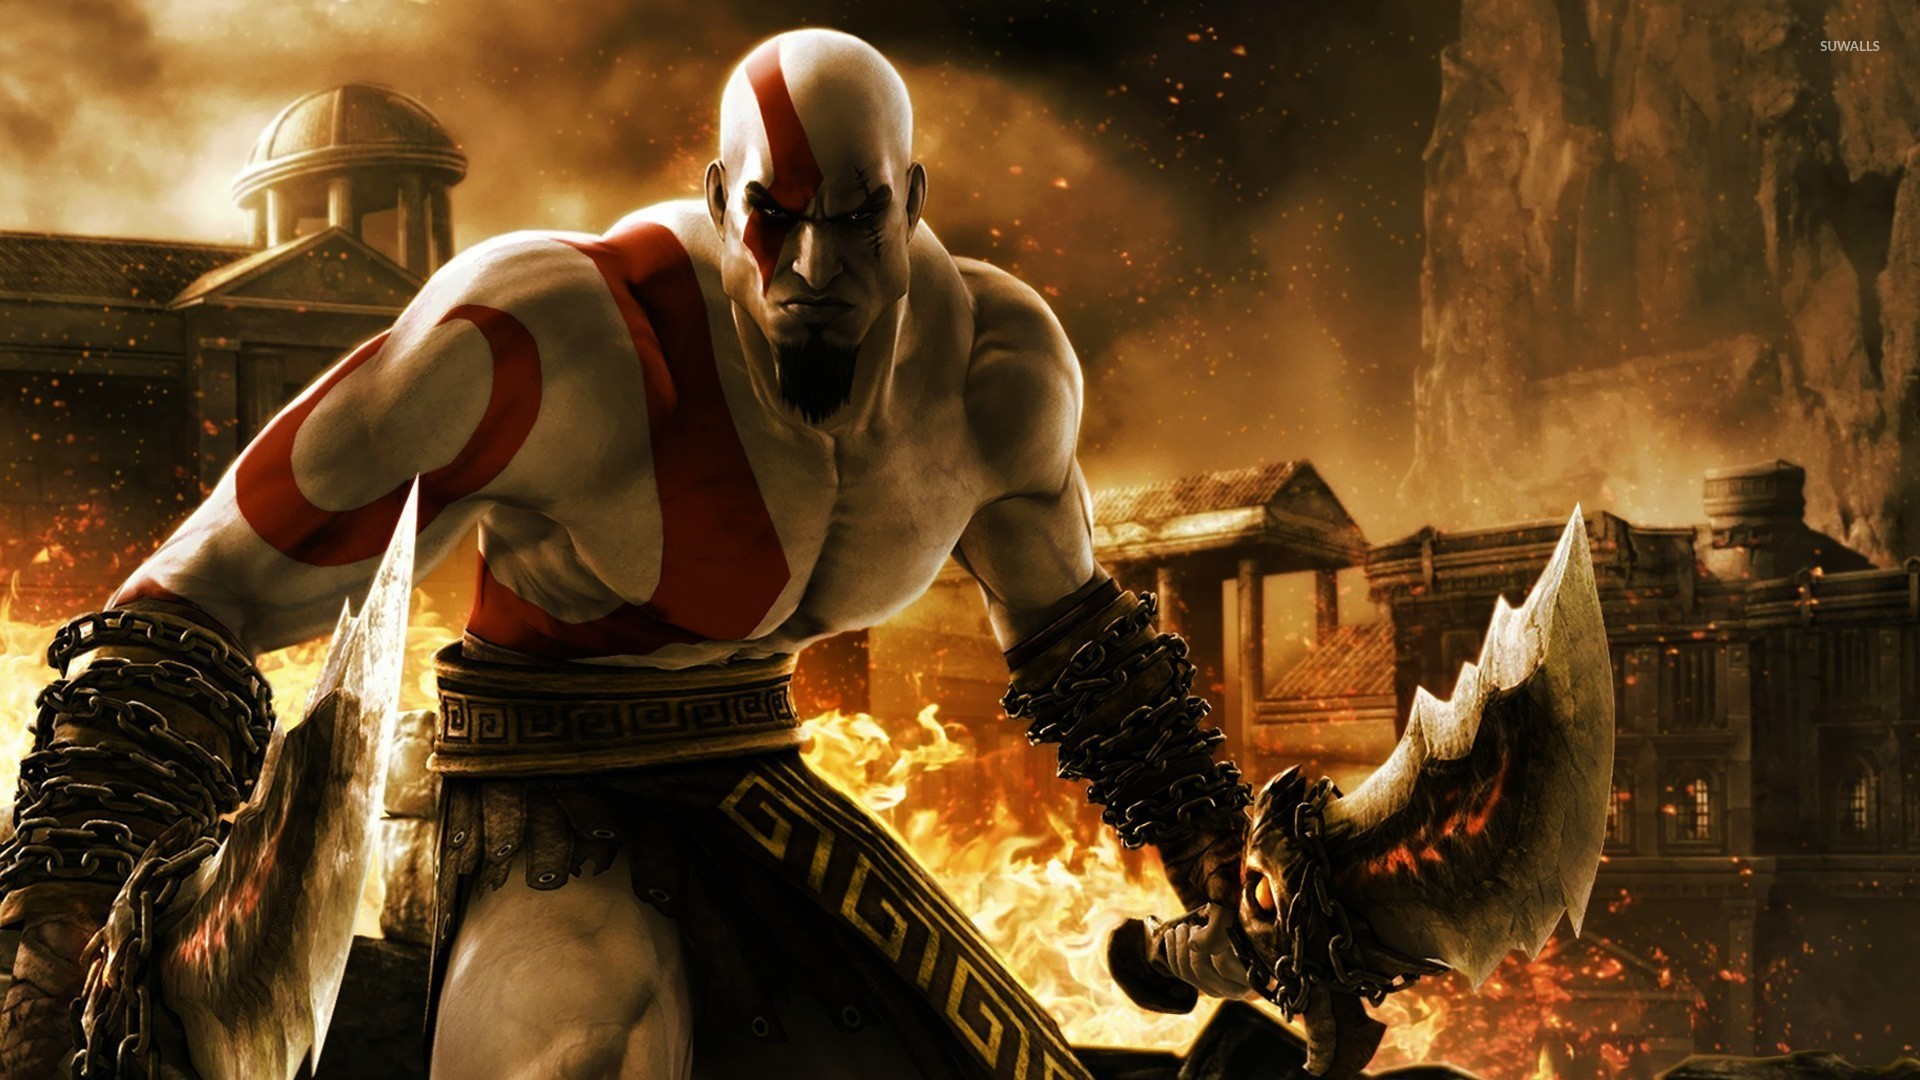 god of war 3 wallpaper (87+ pictures)